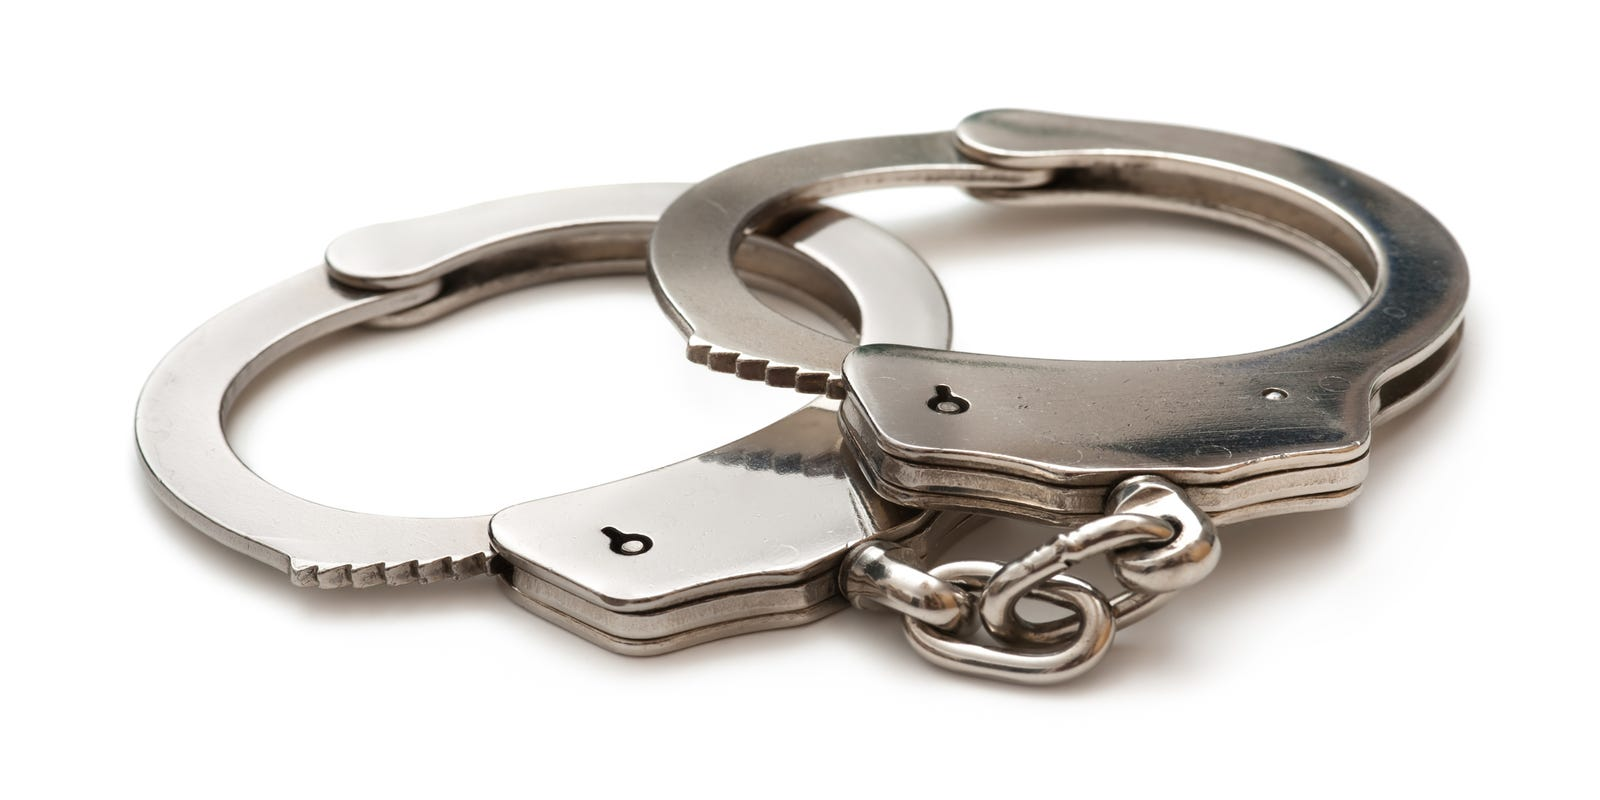 Michigan funeral home manager faces fraud-related charges